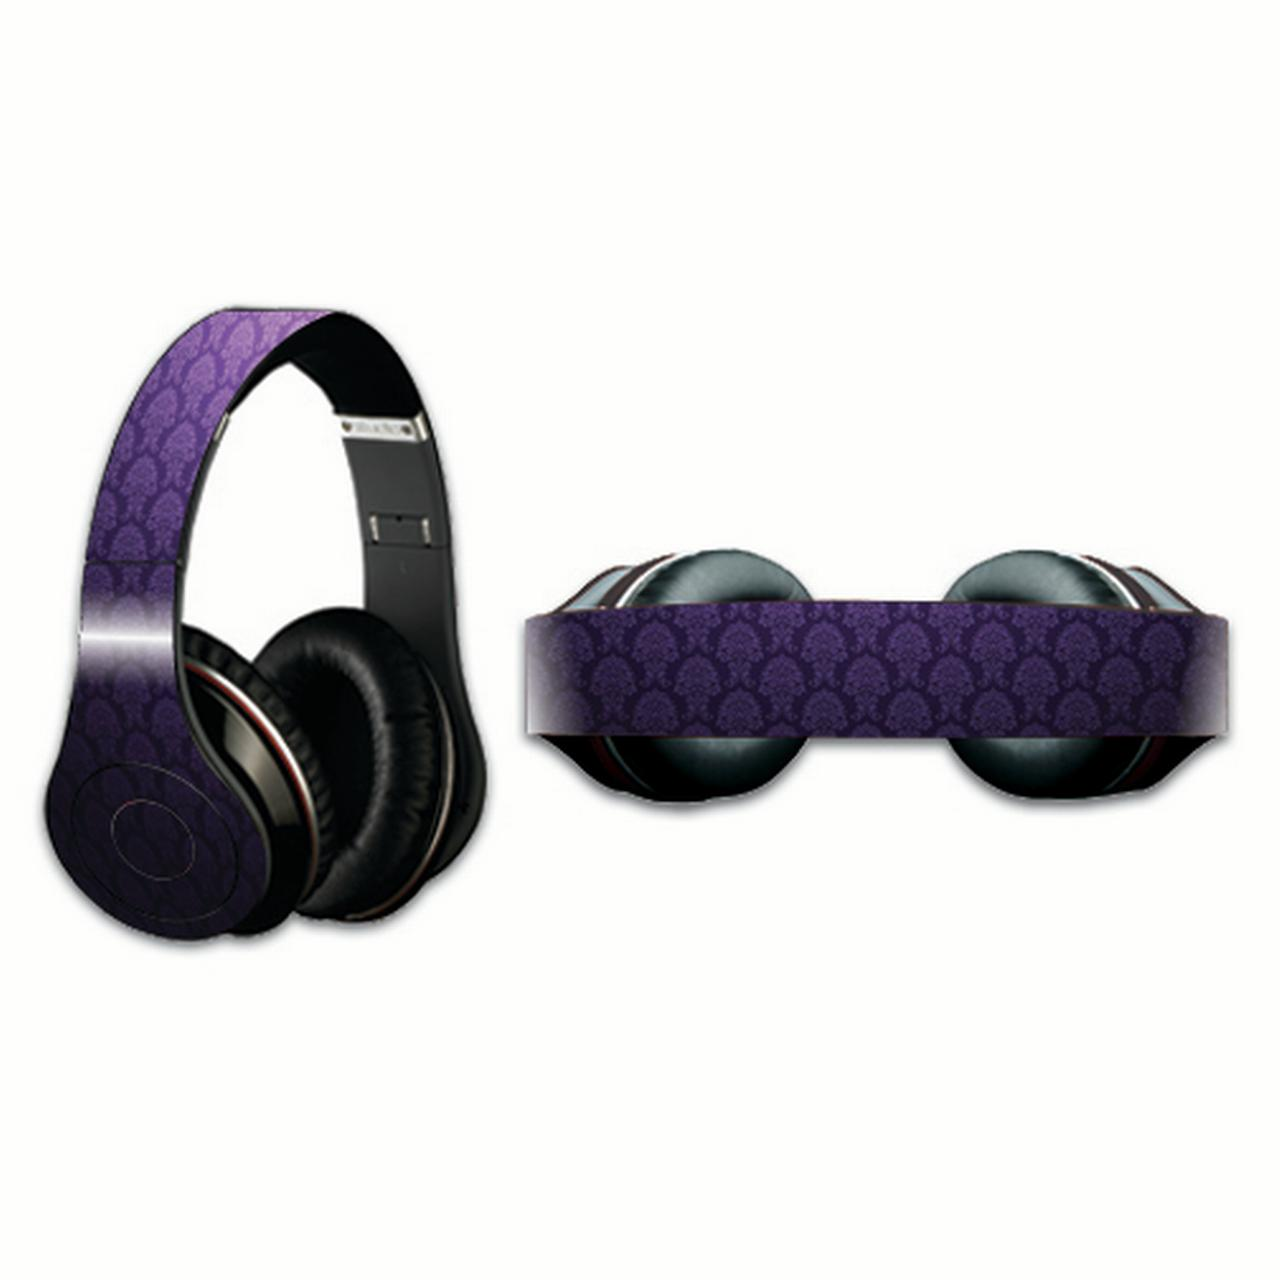 MightySkins Skin Decal Wrap Compatible with Dr. Dre Beats Sticker Protective Cover 100's of Color Options